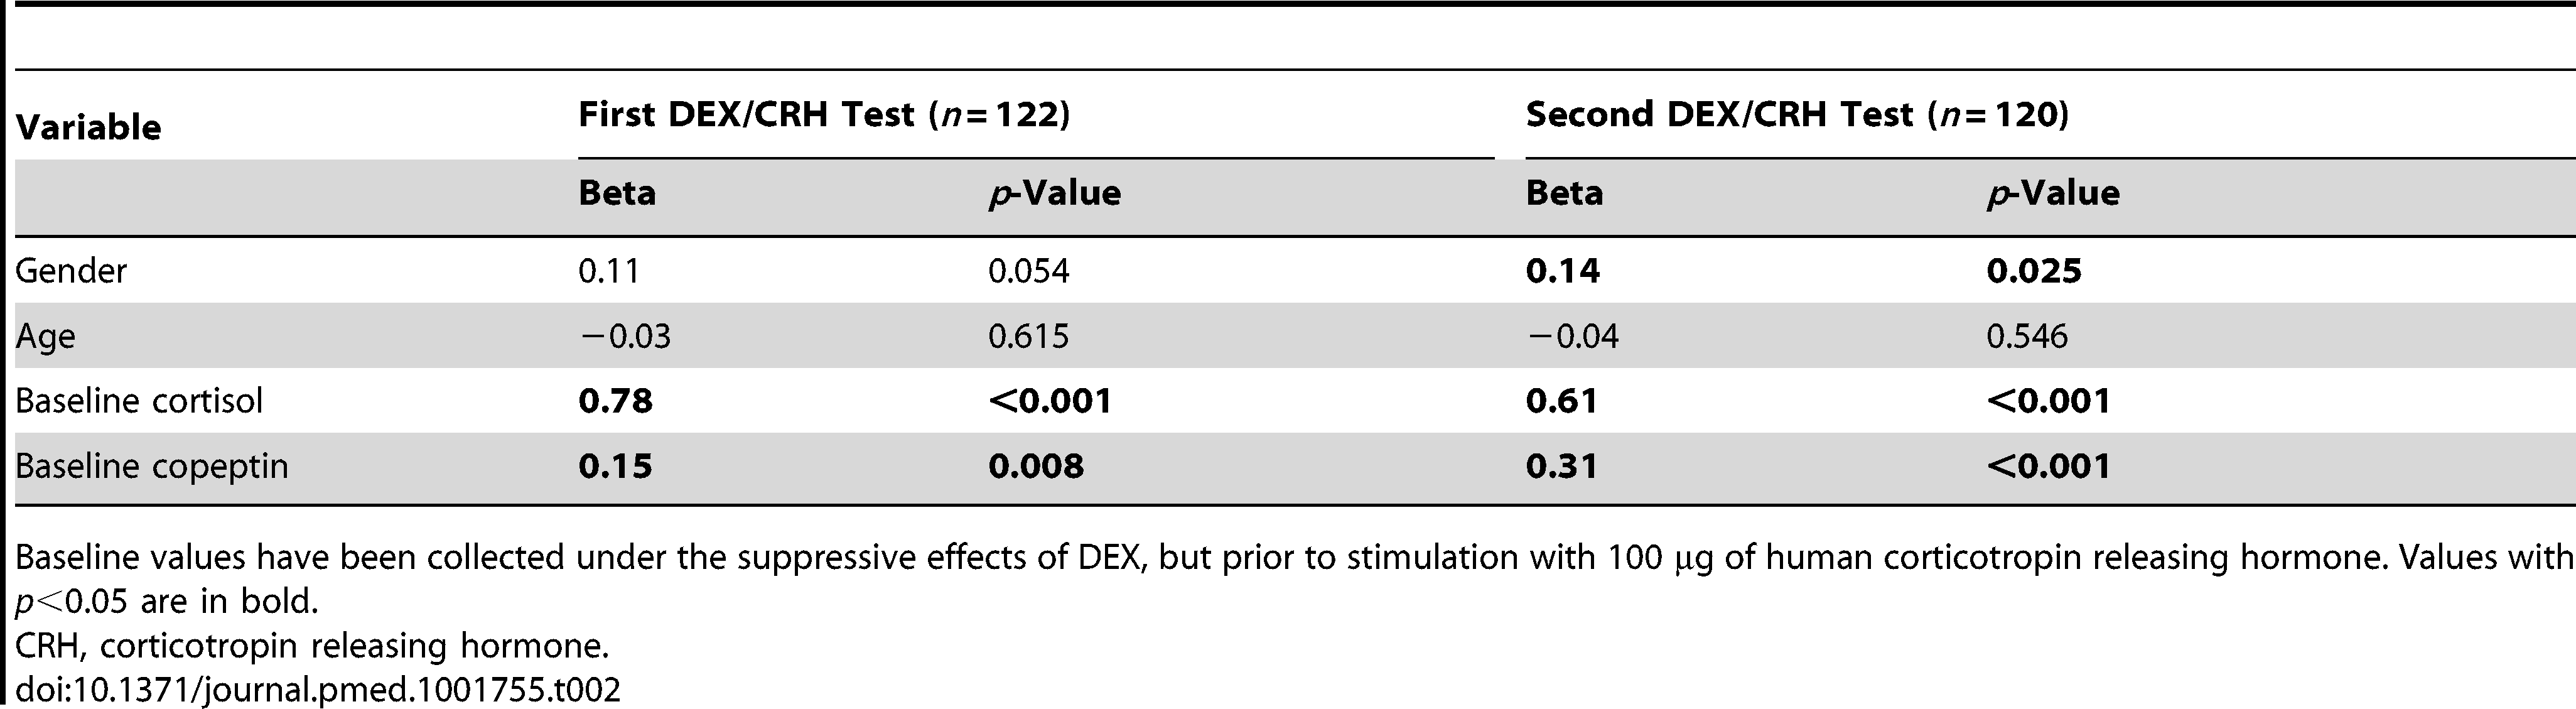 Regression model predicting cortisol response in the first and second dexamethasone/corticotropin releasing hormone test (in terms of total area under the curve) using gender, age, dexamethasone-suppressed baseline cortisol, and baseline copeptin as predictor variables.